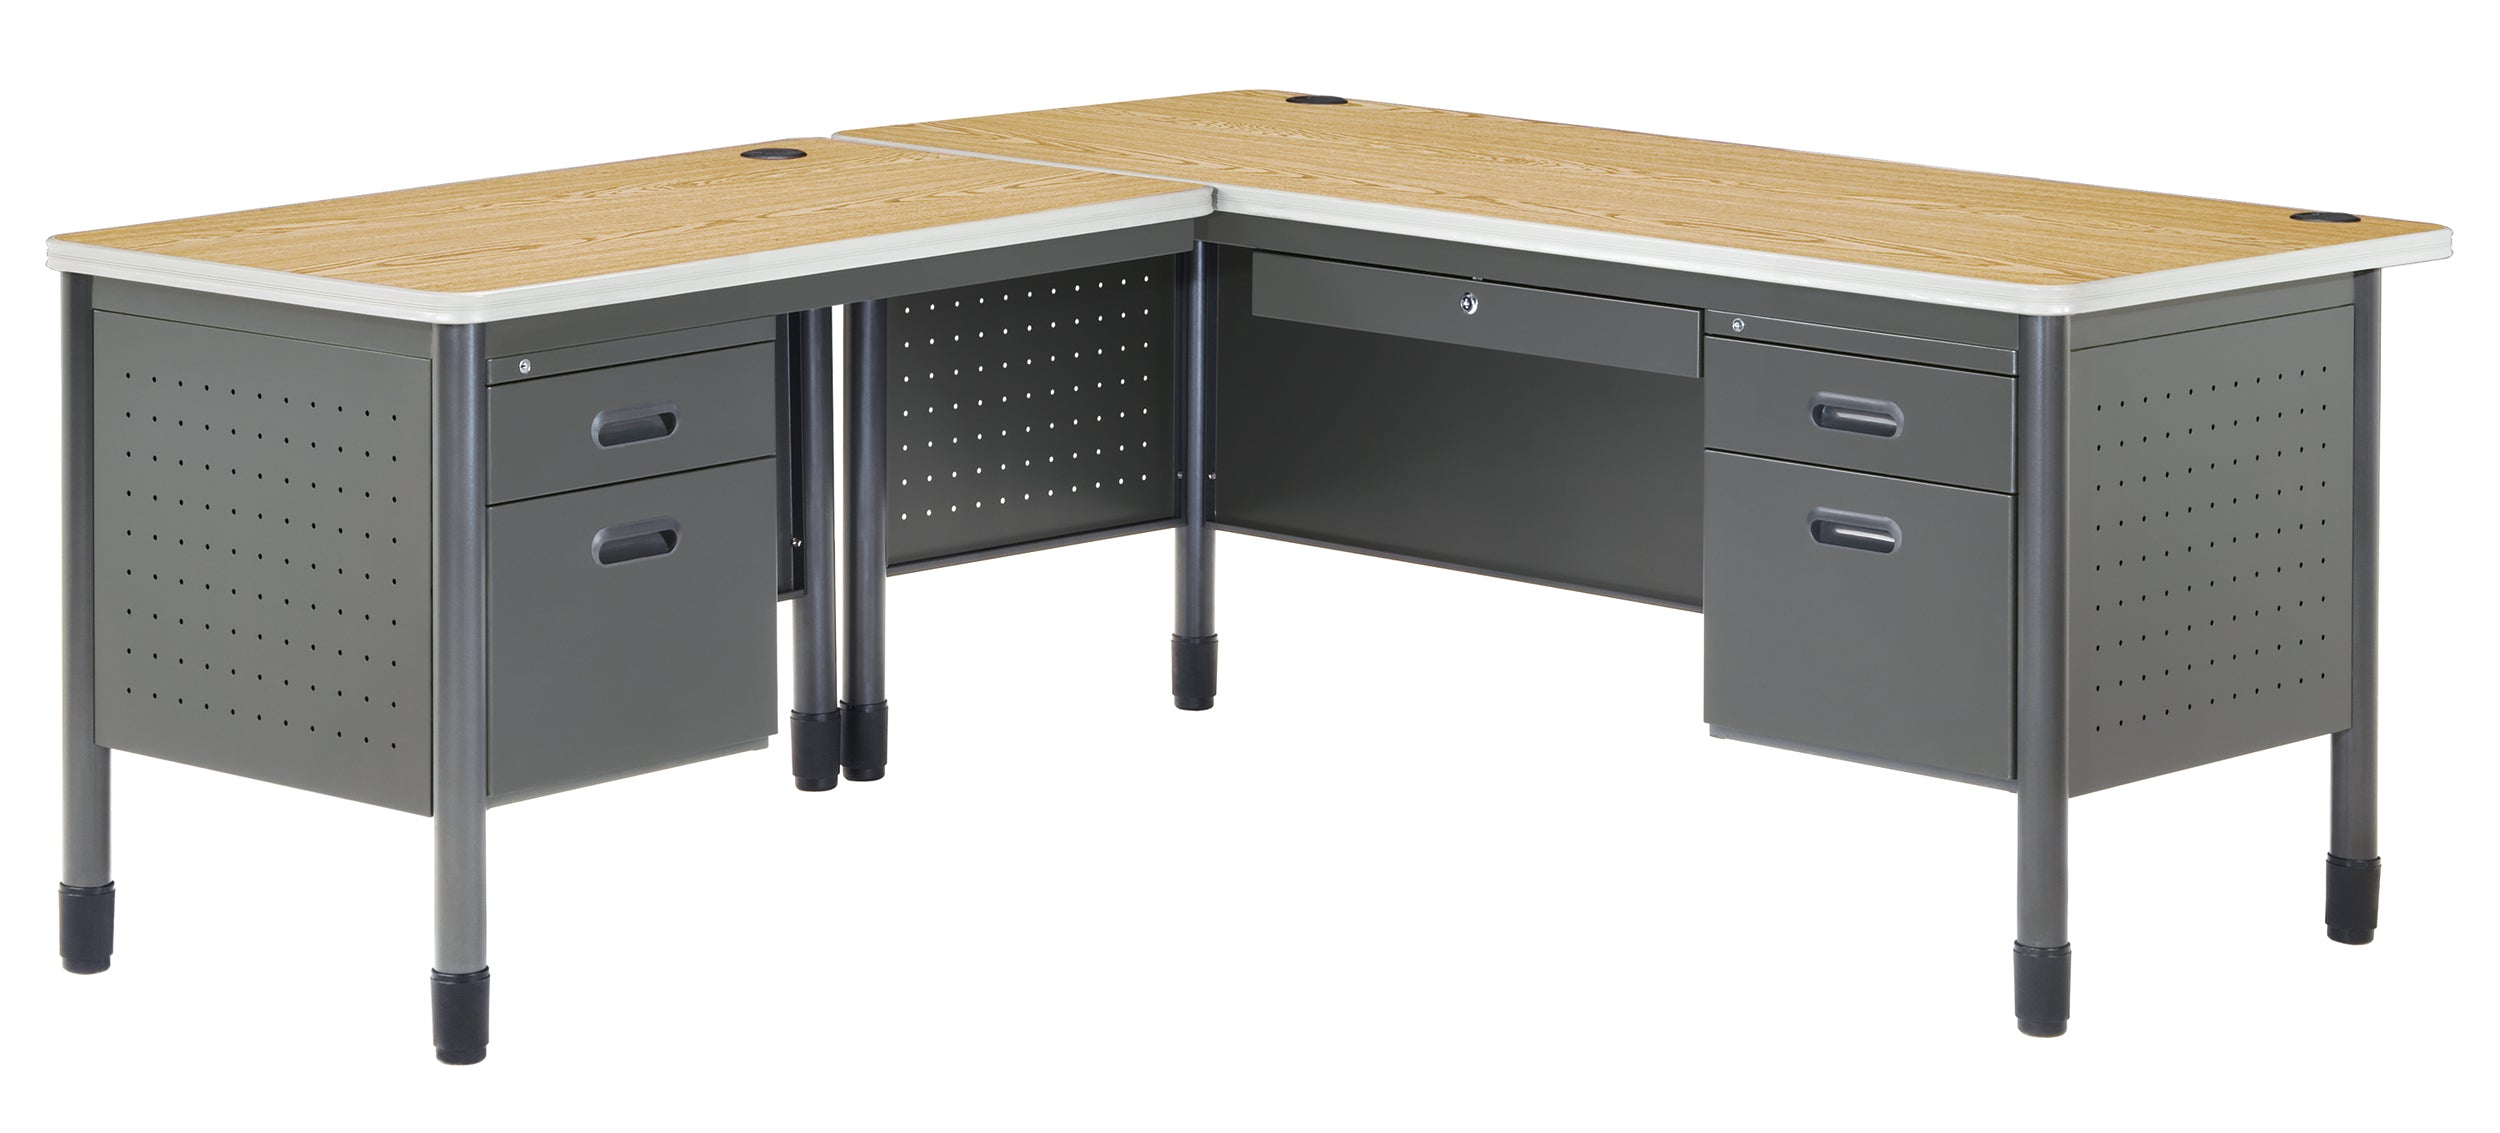 Ofminc Model 66366L Mesa L-Shaped Desk with Left Return